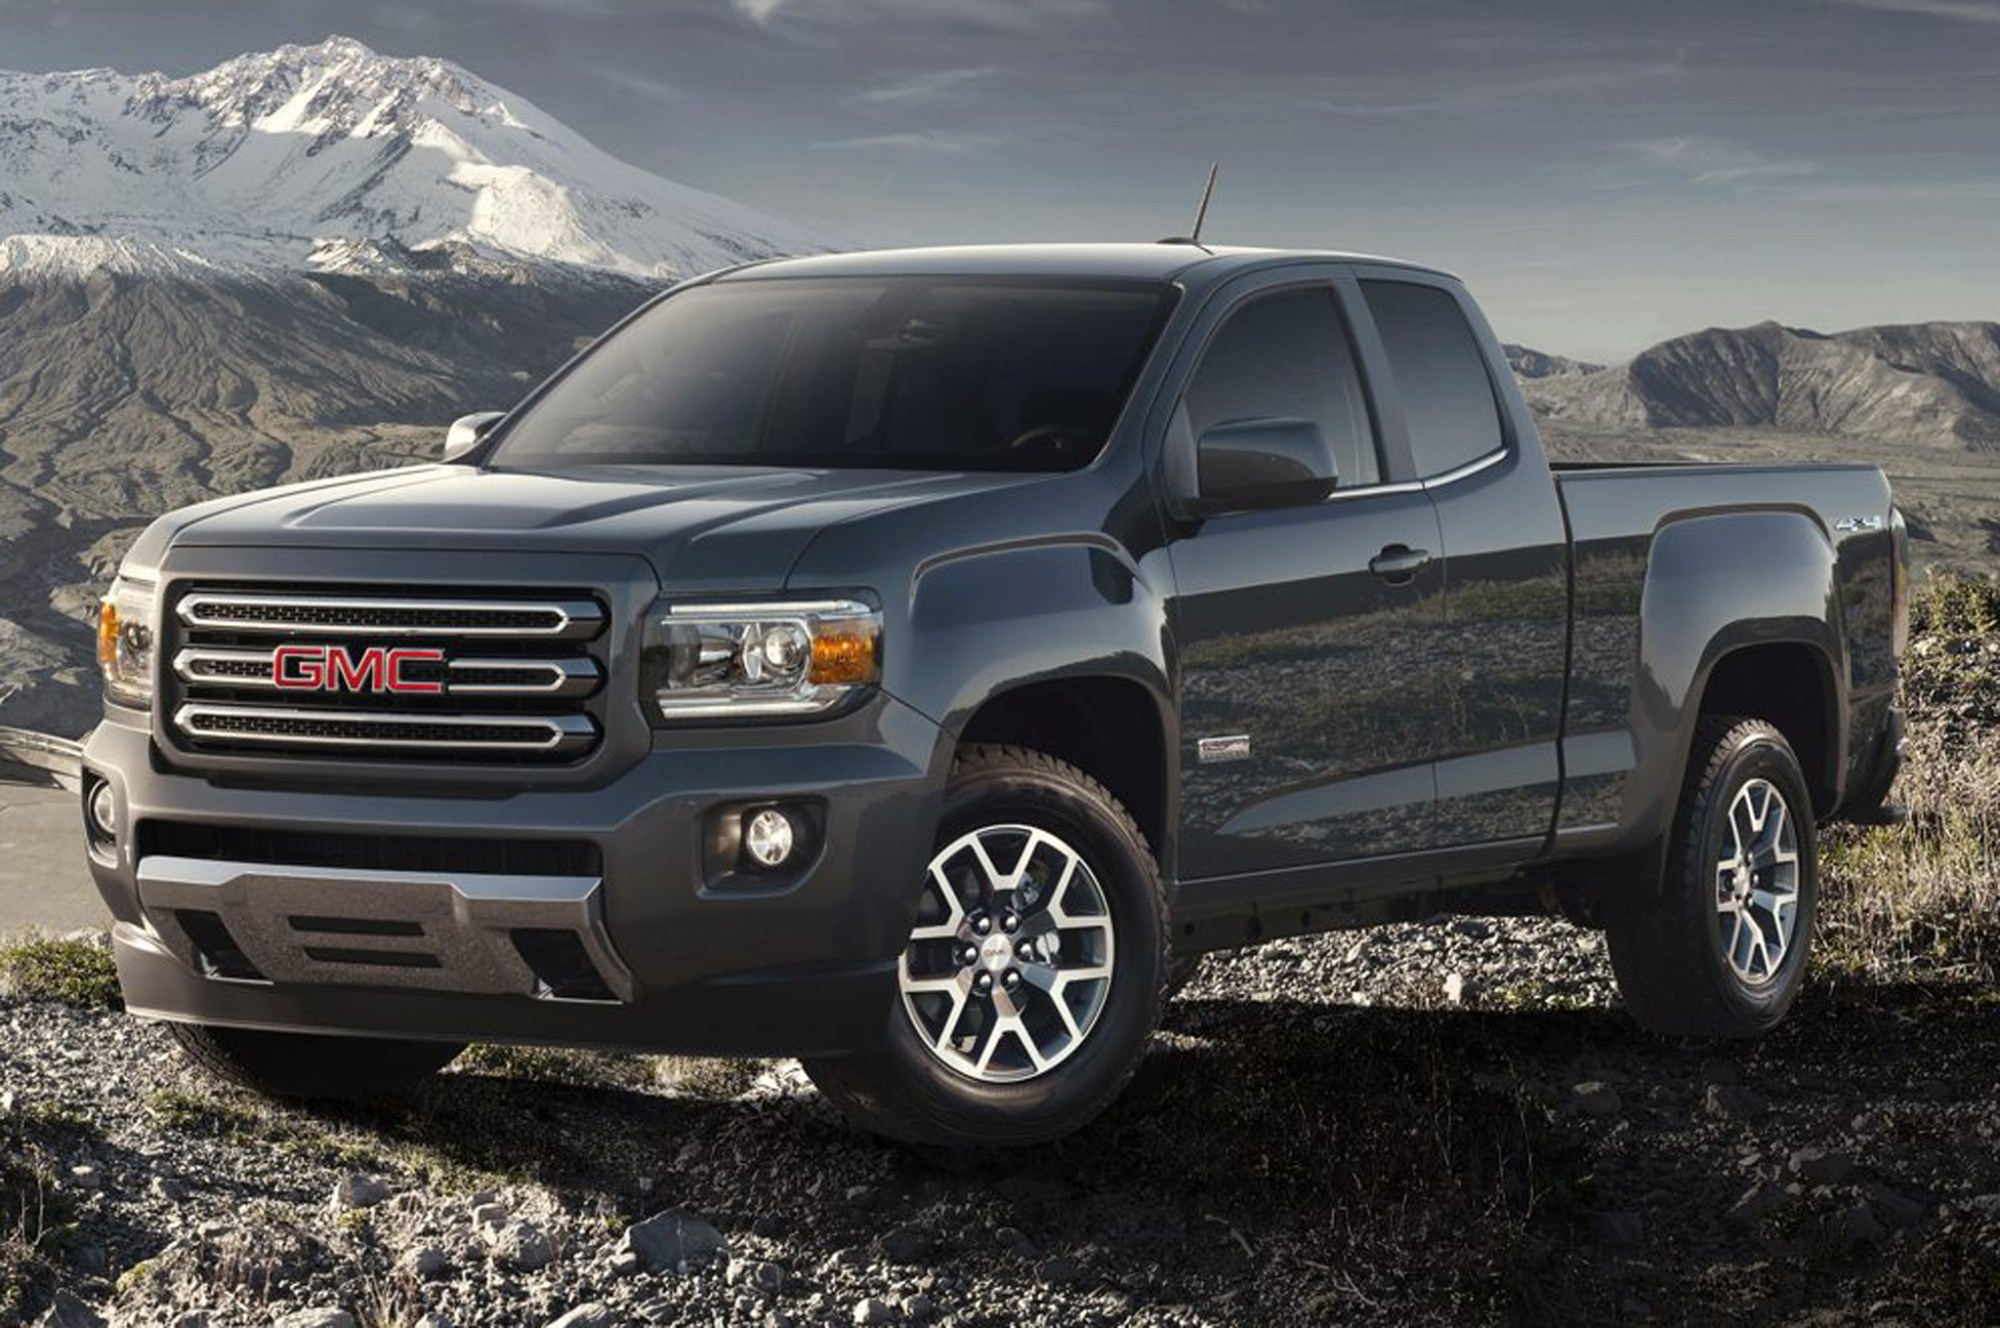 hight resolution of  a parent who needs a midsize truck for work or play you ll be excited to learn that with the new 2015 gmc canyon the manufacturer will debut brand new